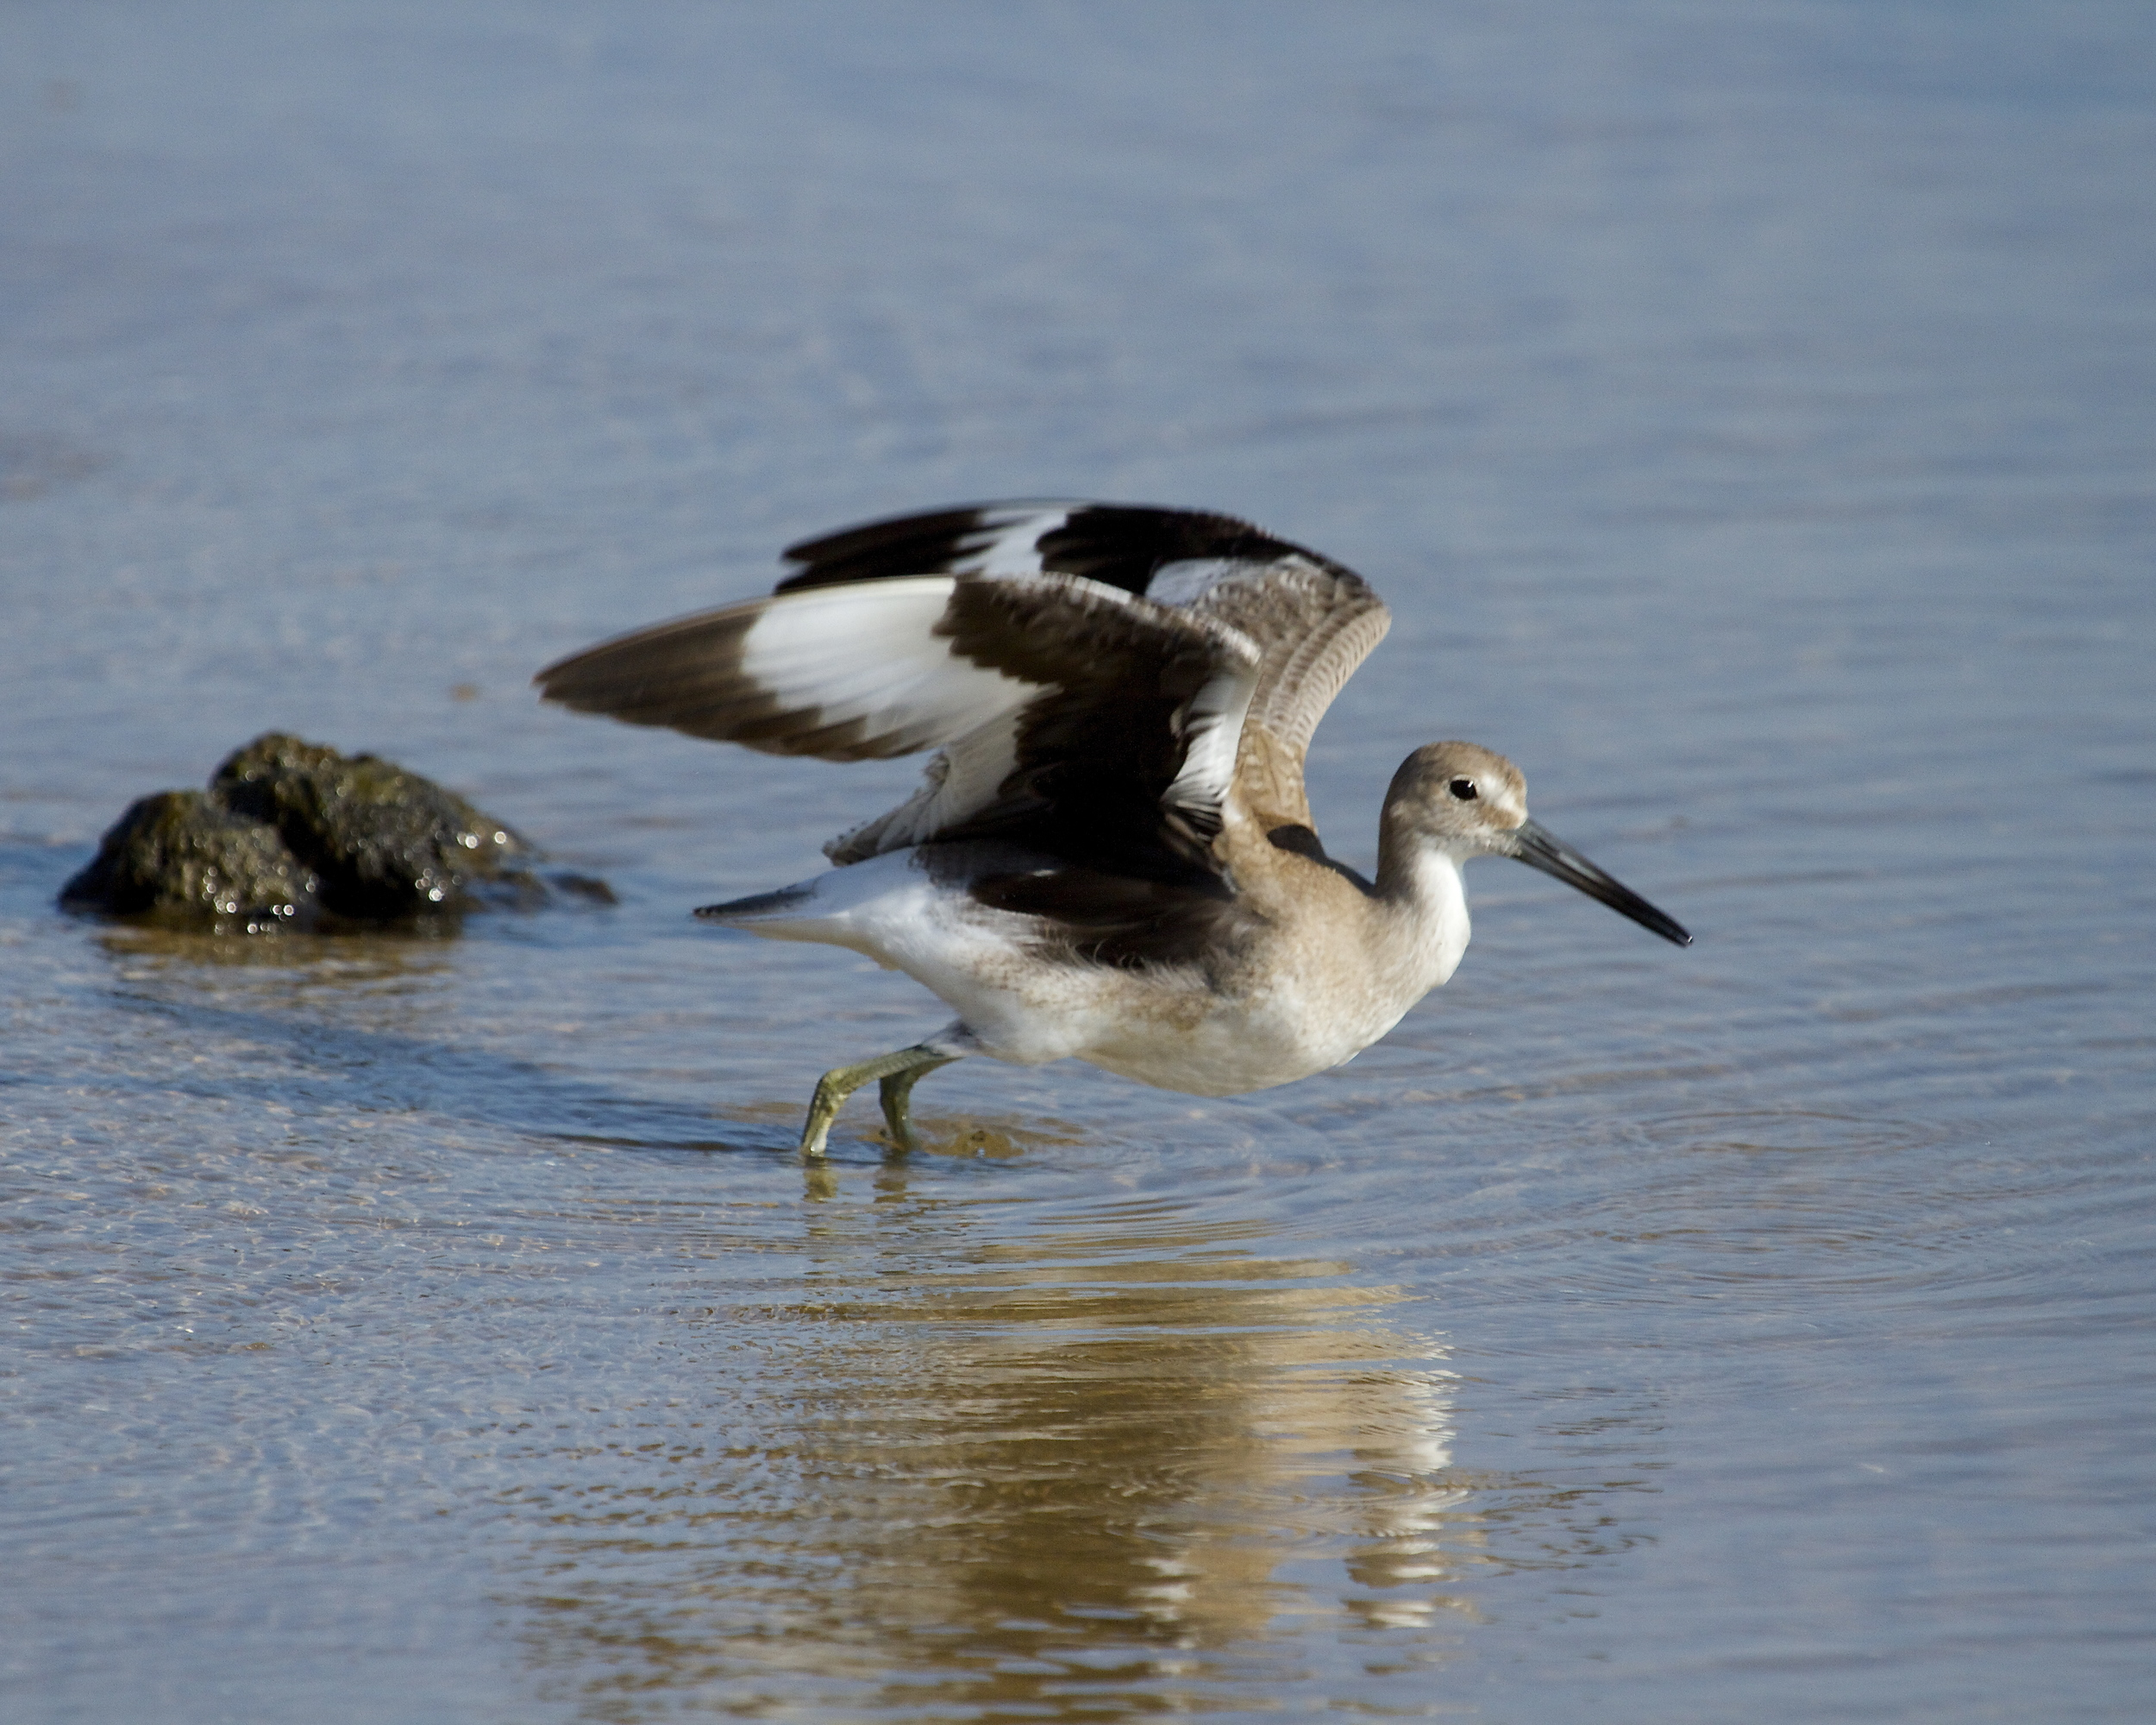 The Willet prepares to take wing!